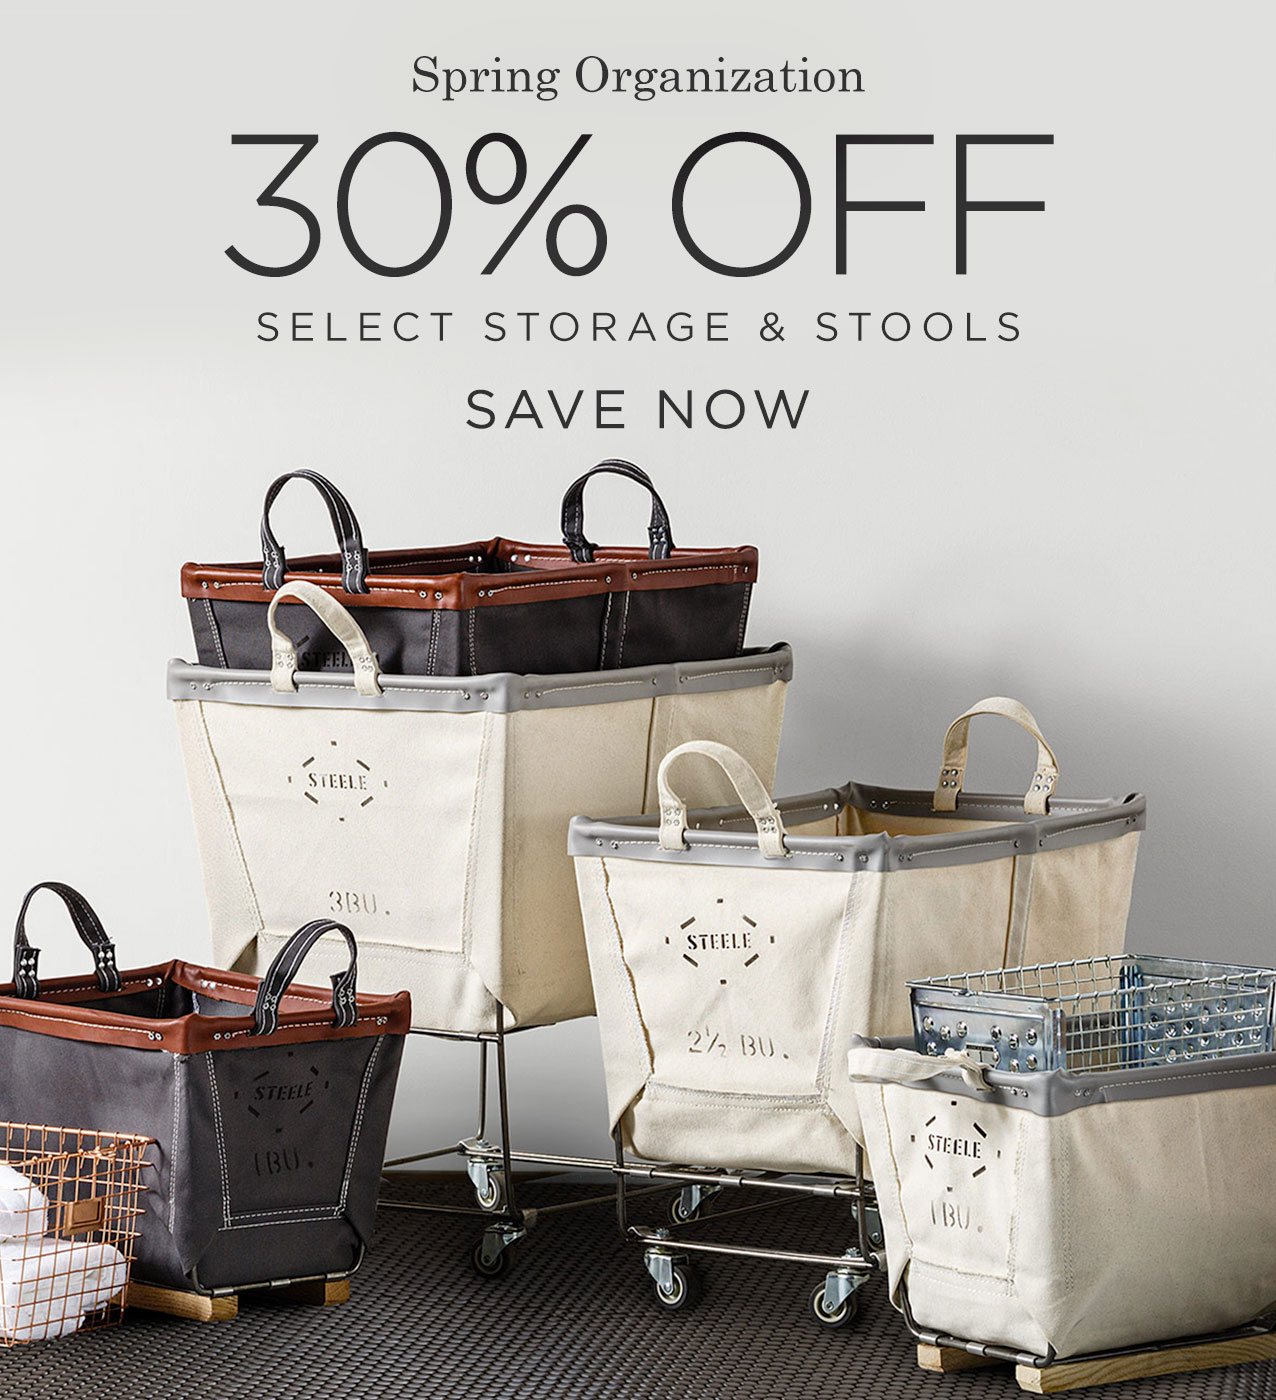 Save 30% on Select Storage & Stools